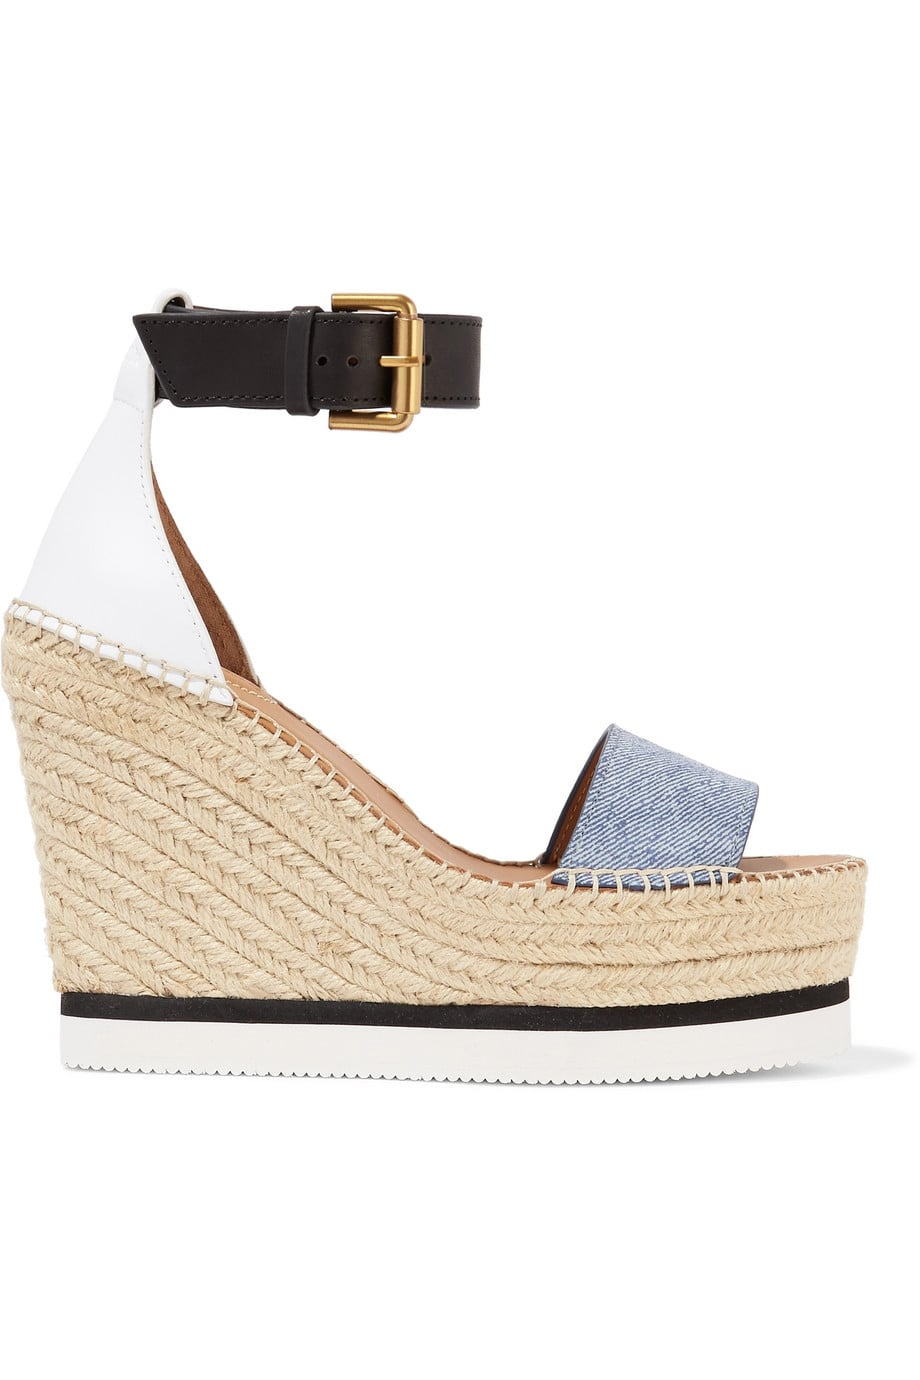 The Sporty Wedge | We Can't Keep Our